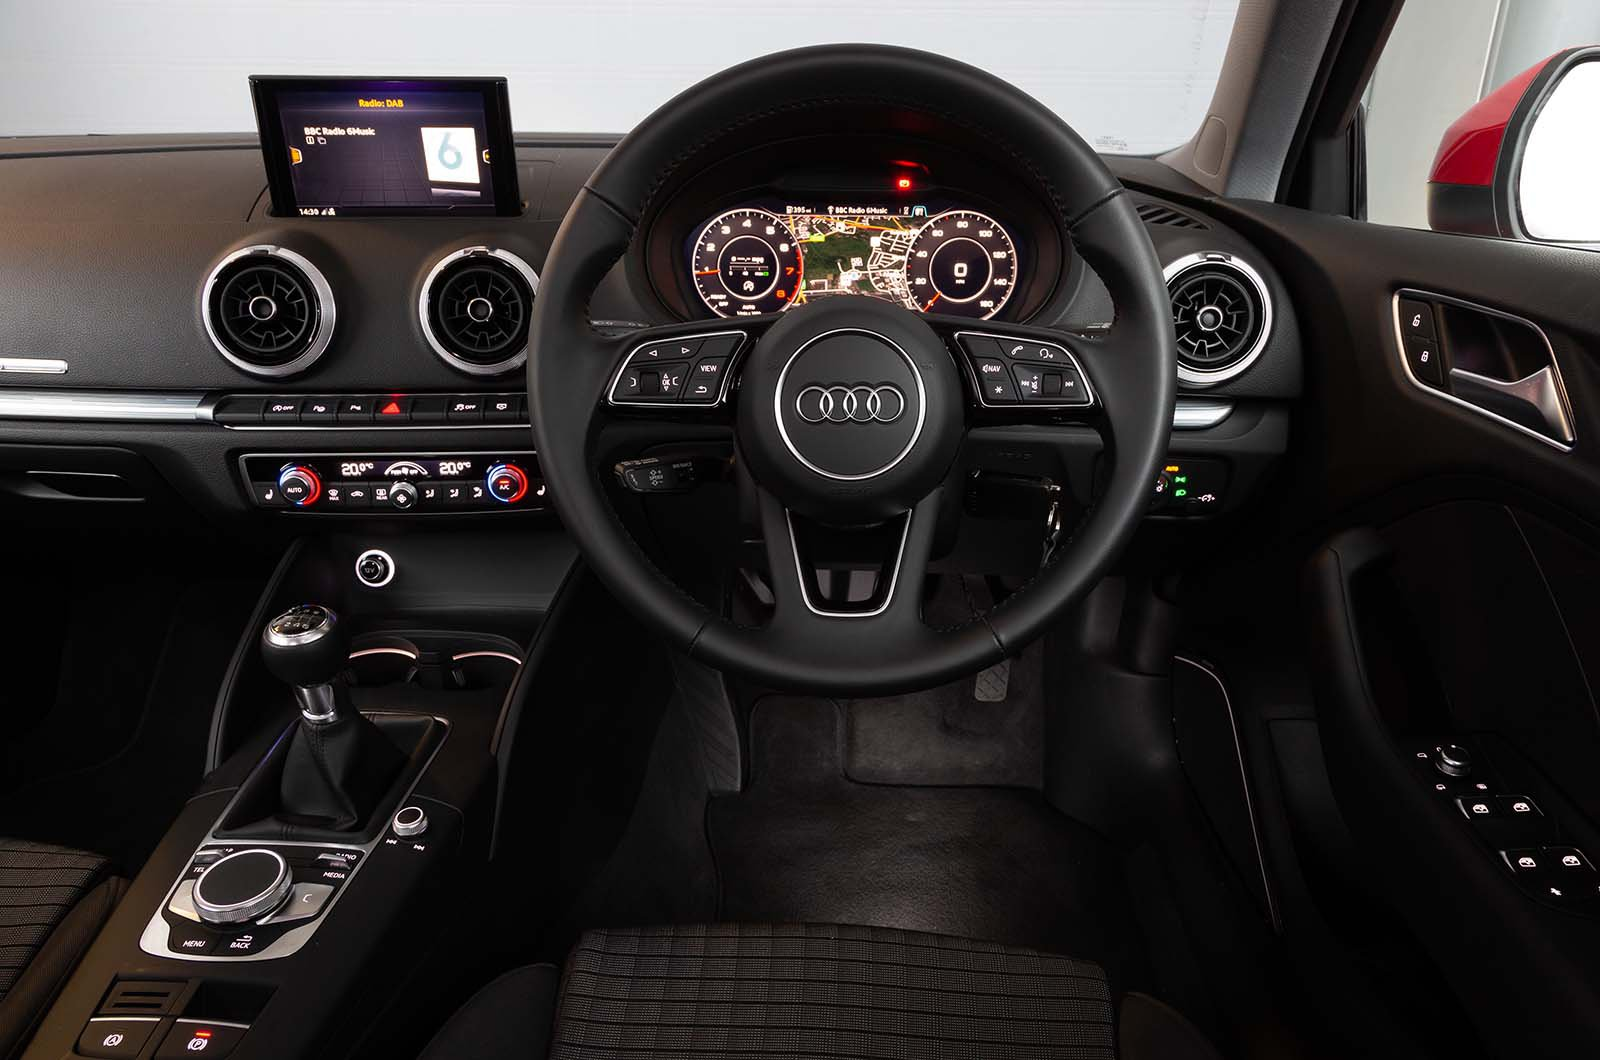 Used Audi A3 (13-present) long term test review interior